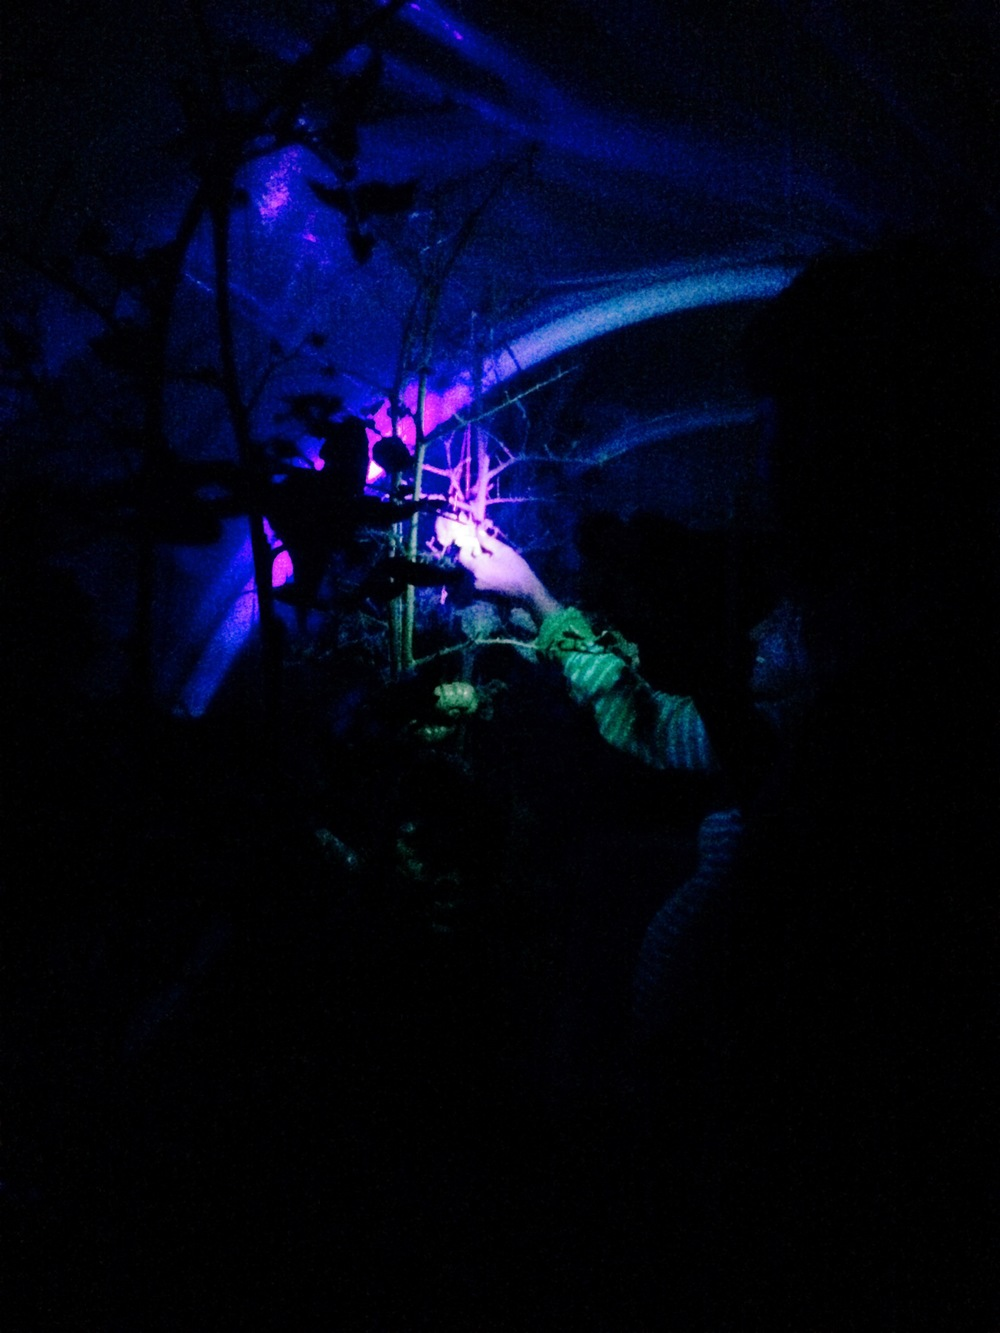 Turns out the rumors are true! Tomato hornworms glow under blacklight, so this is our new preferred picking method - out after dark, hunting by flashlight, squishing under our boots.